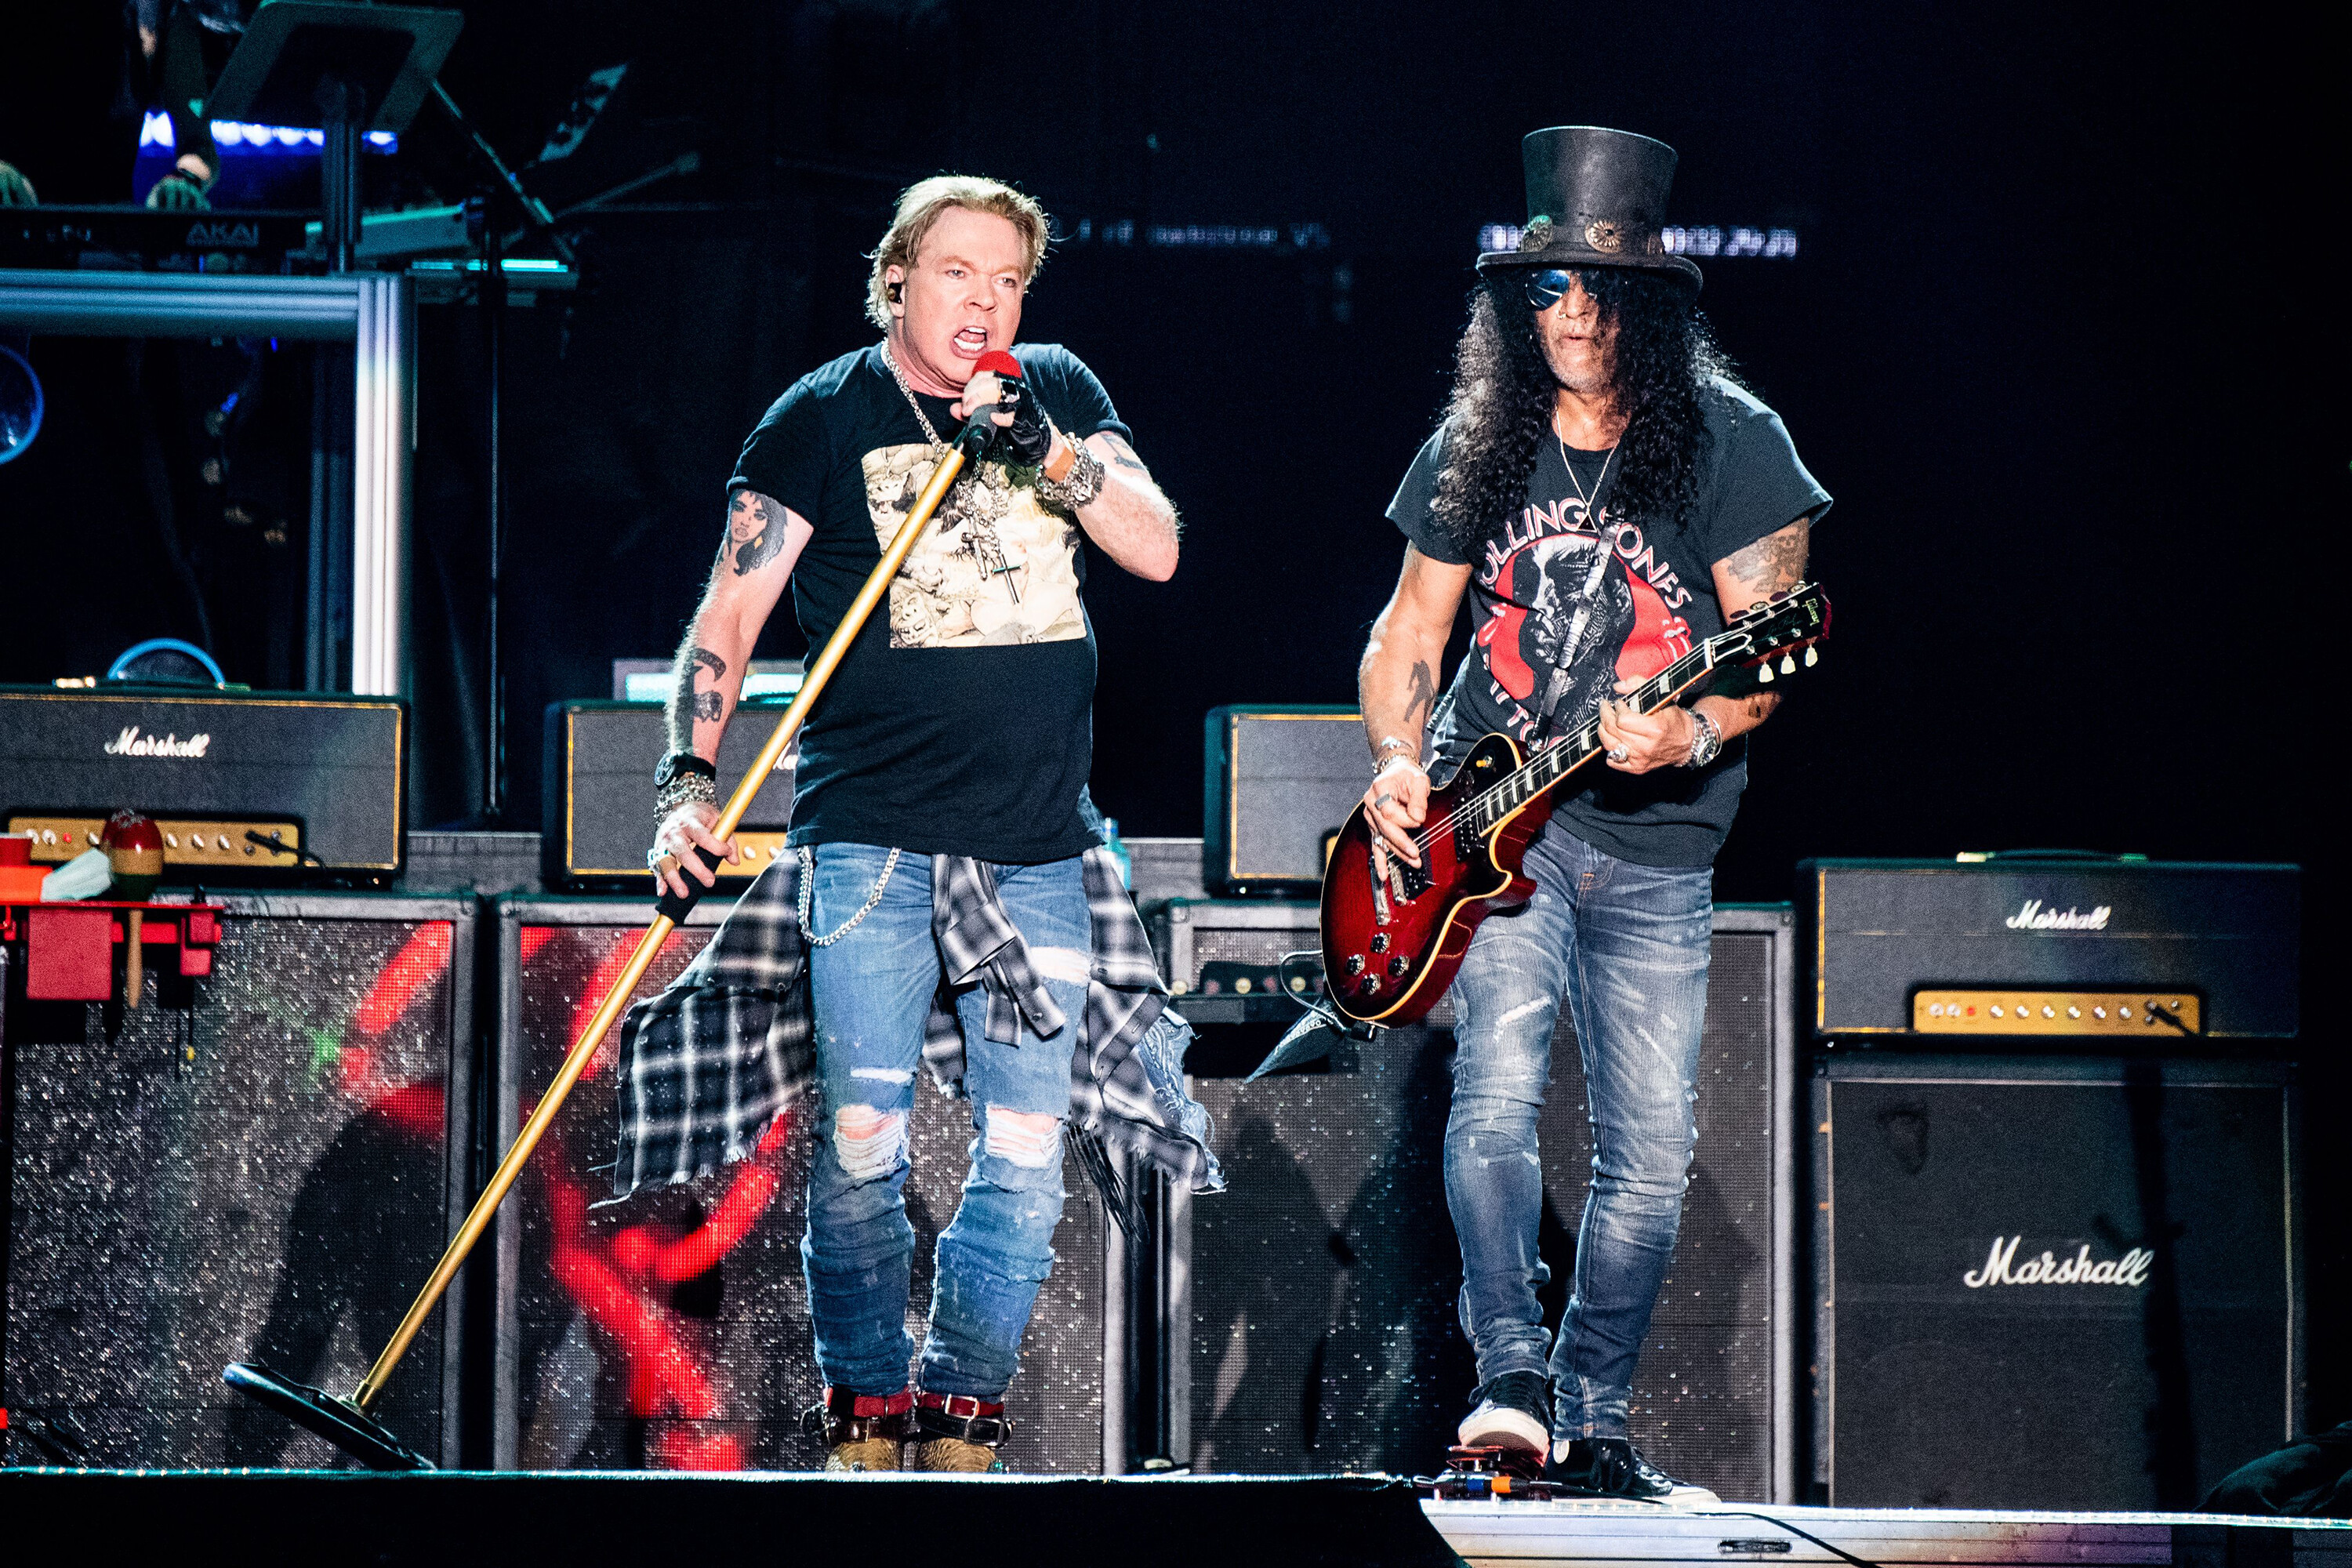 Guns N' Roses release their first new song in 13 years